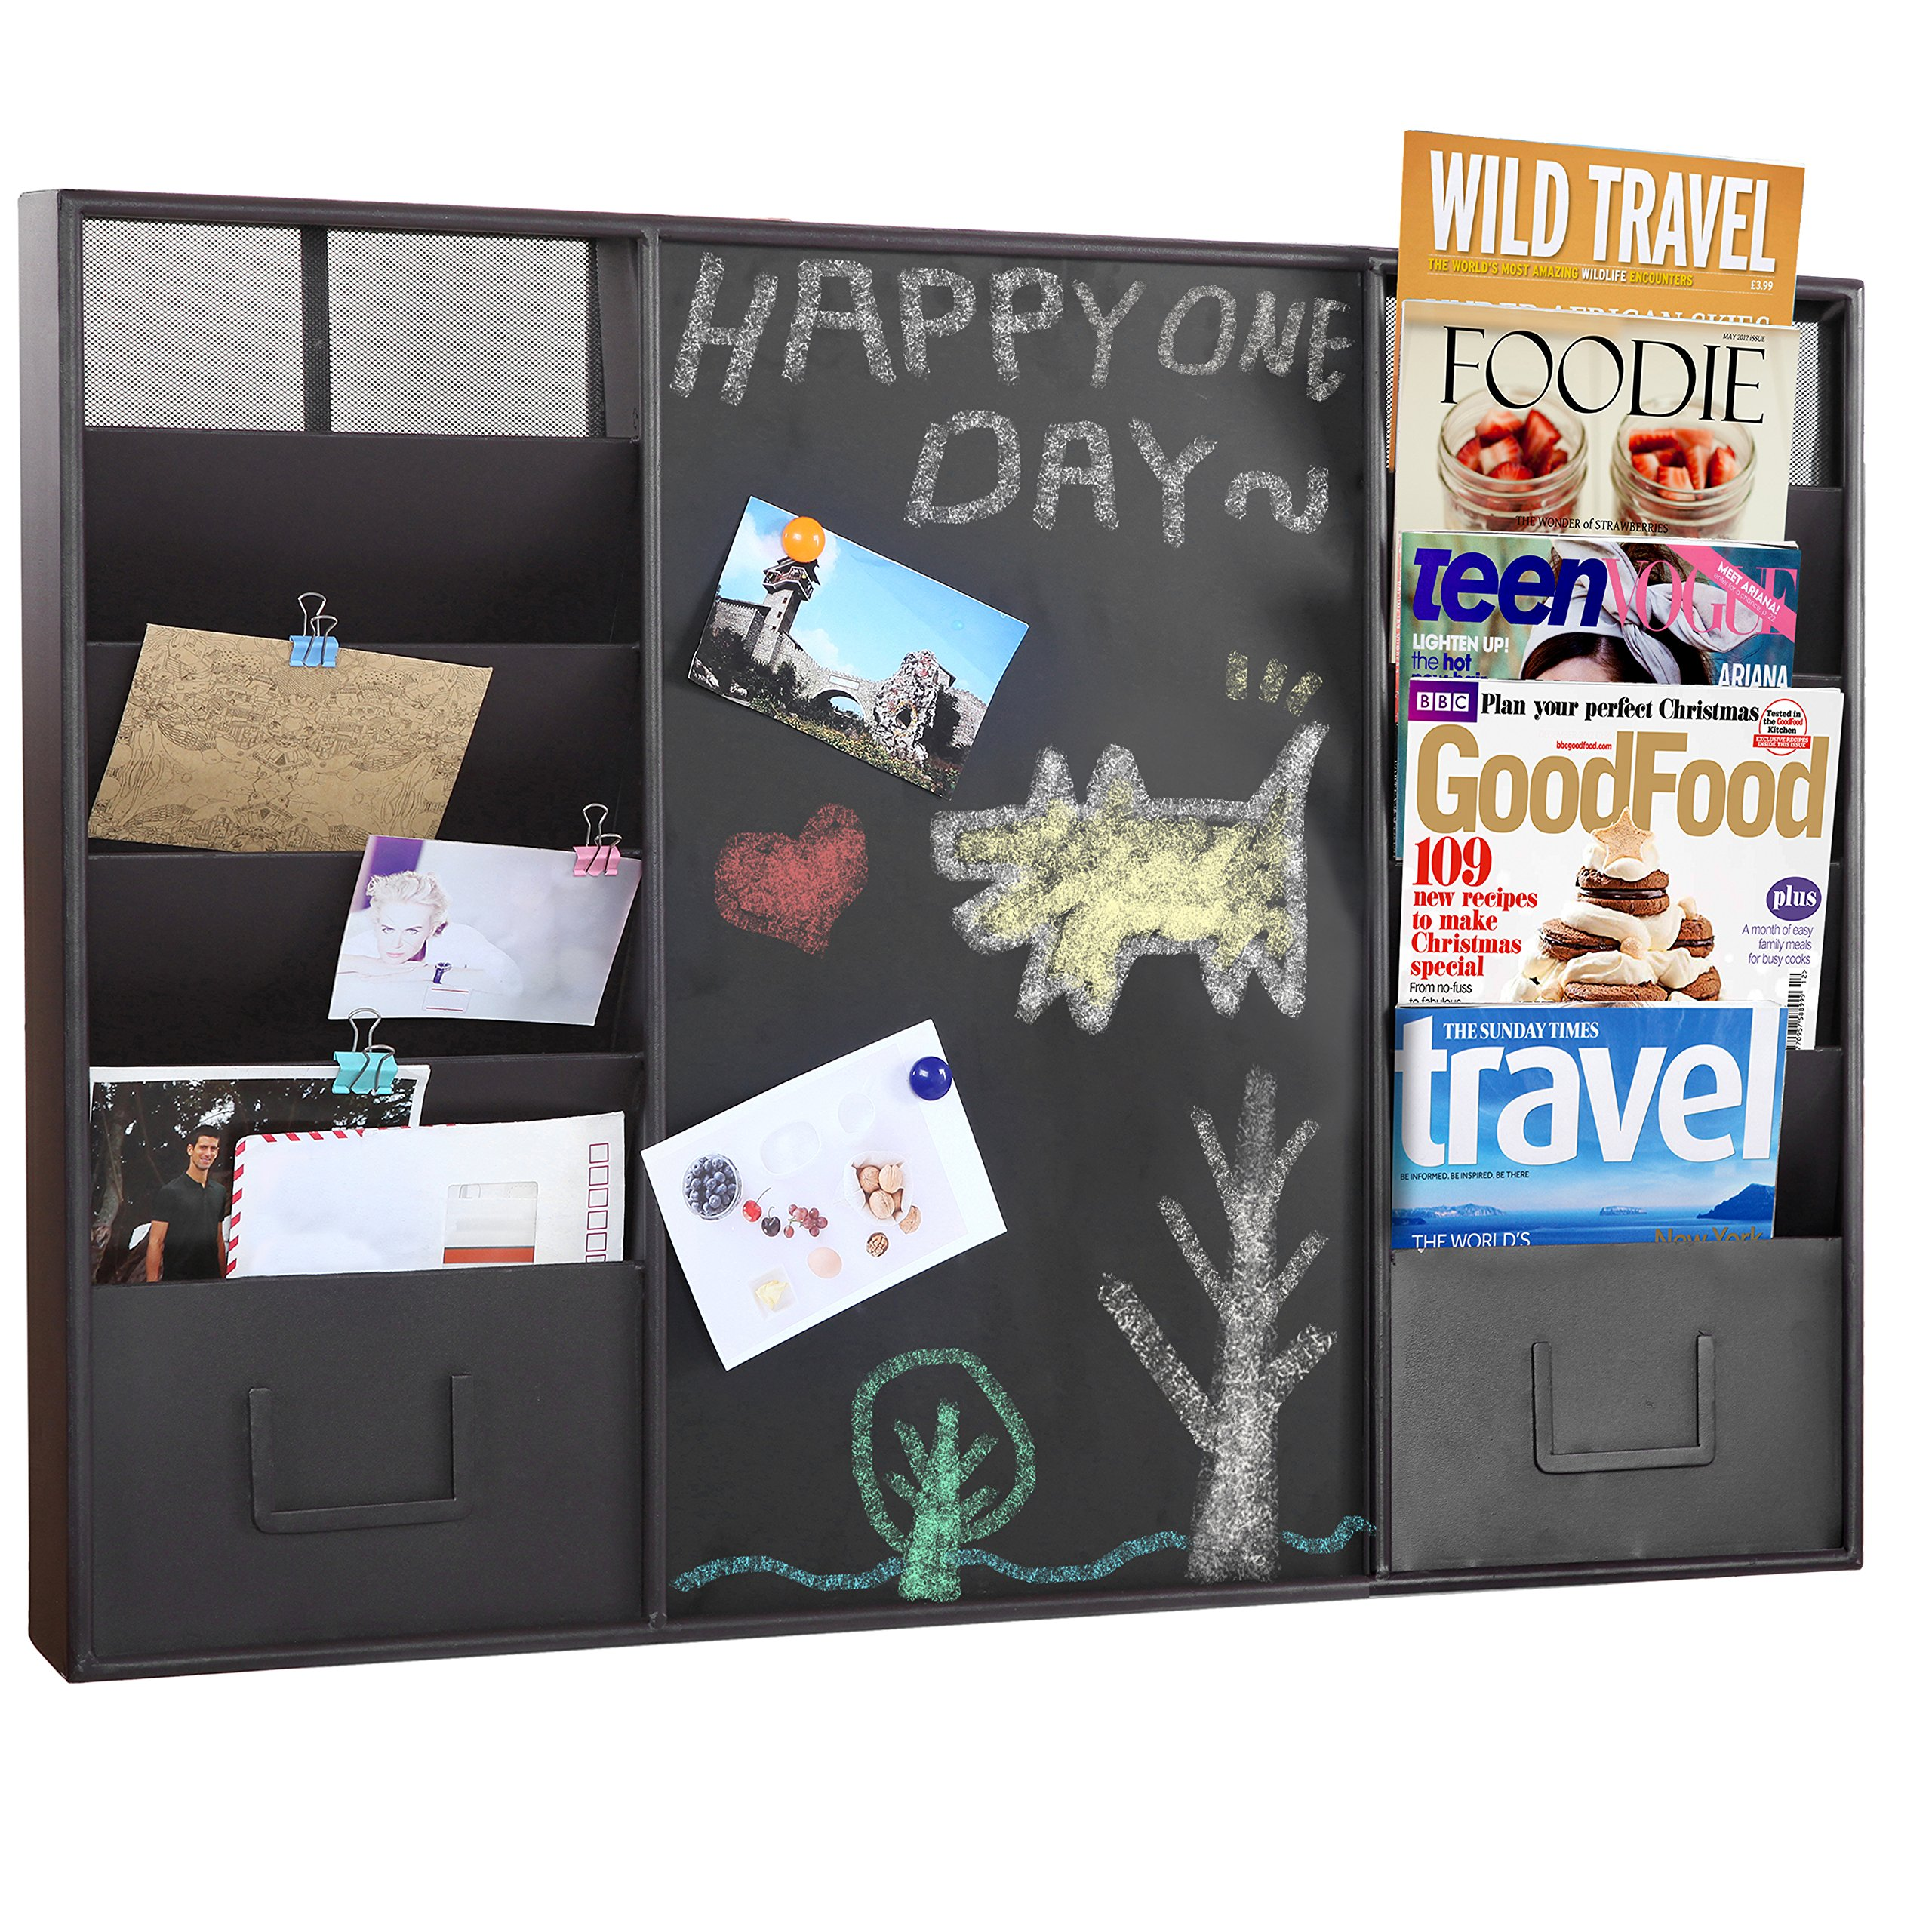 34-Inch Wall-Mounted Brown Metal Memo Message Chalkboard / 10 Slot Document Organizer & Mail Sorter Rack